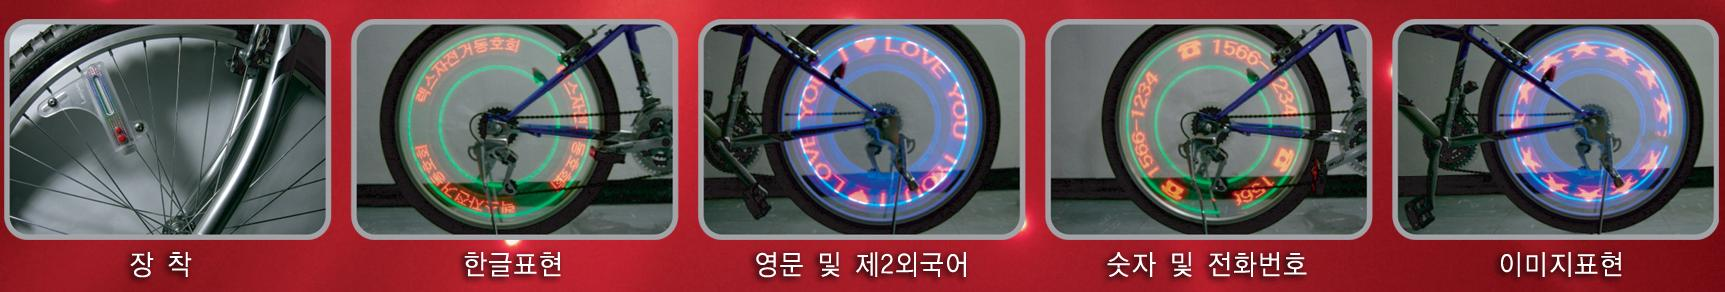 Bicycle LED Light - Lex  Made in Korea